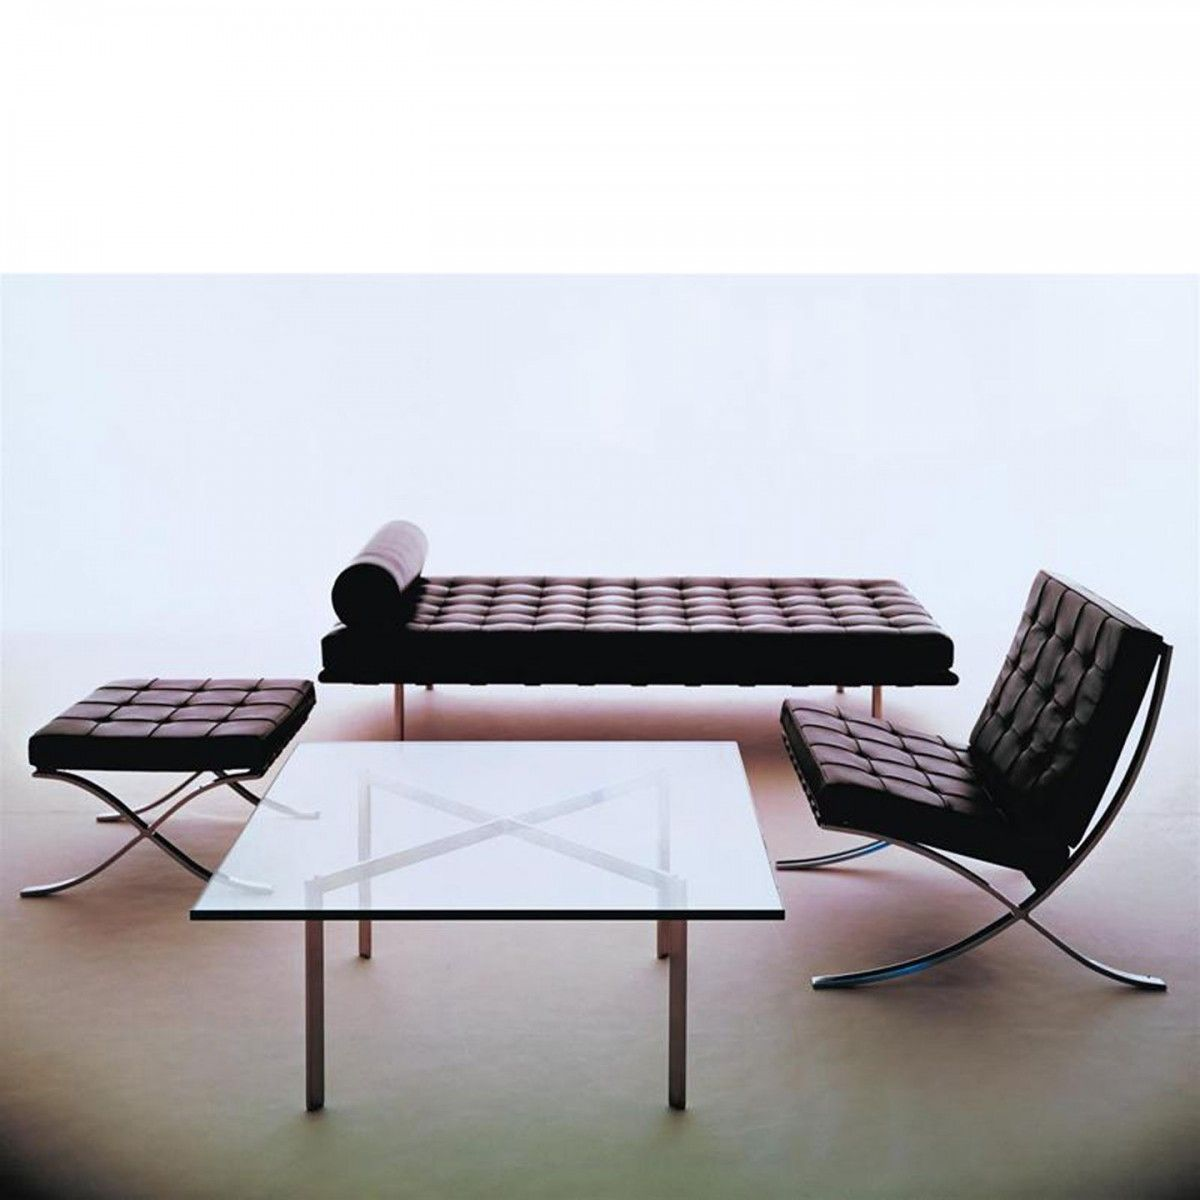 Barcelona Day Bed Barcelona Table and Barcelona Chair by Ludwig